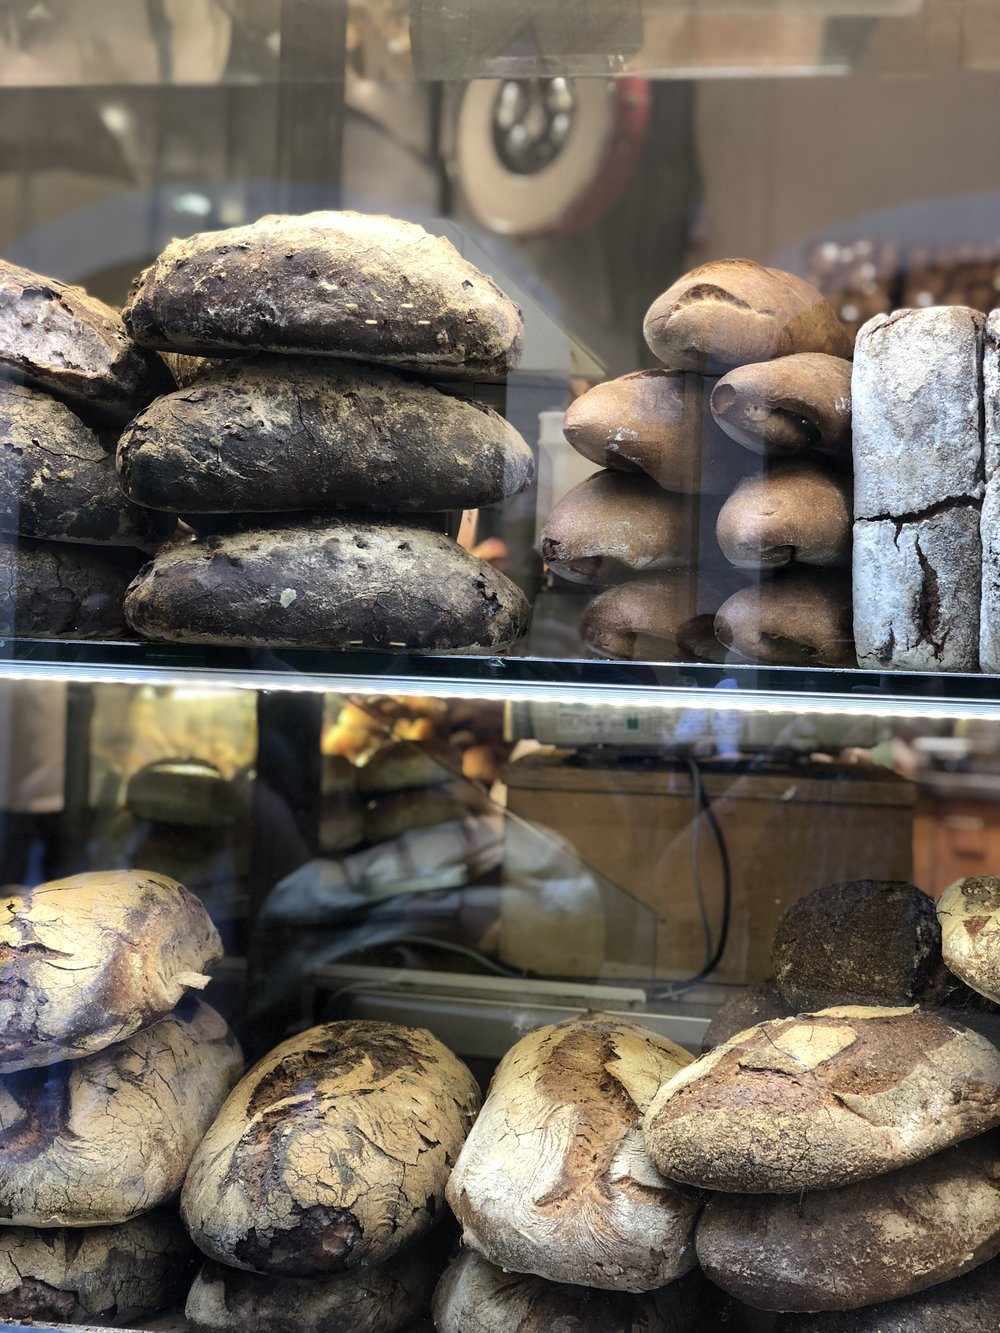 Crusty, crunchy yummy breads in Rome at Forno Roscioli